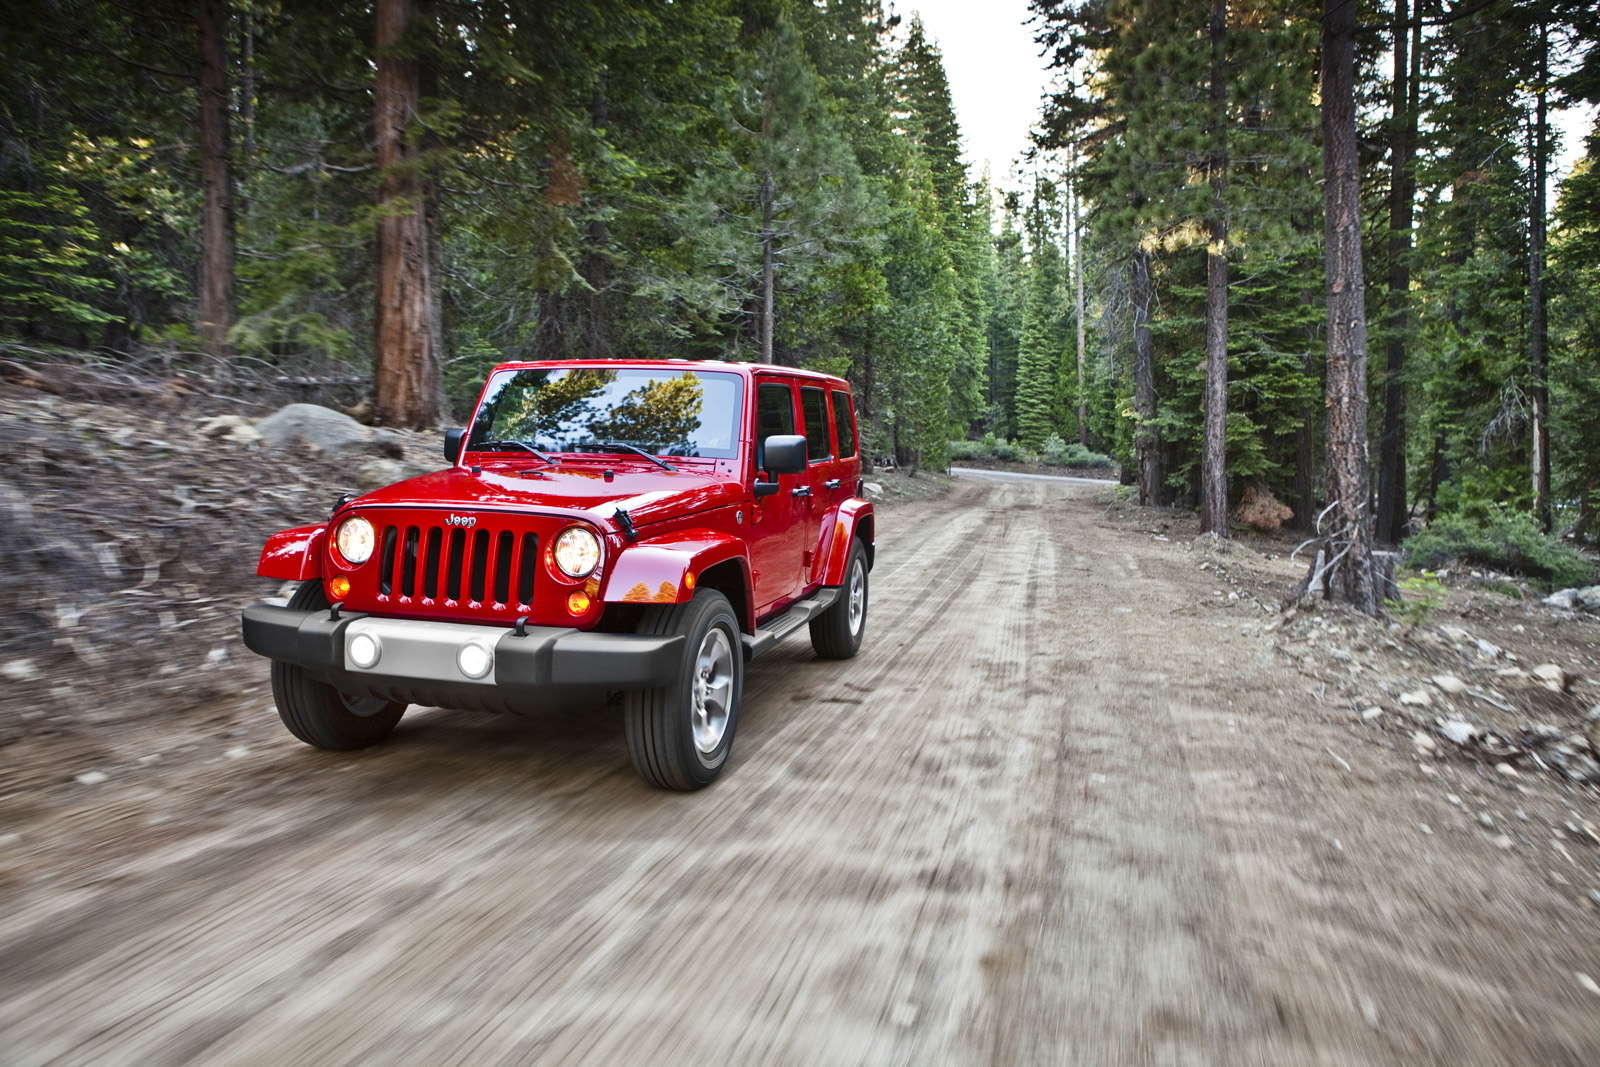 Unofficially Confirmed: Next Jeep Wrangler Getting 8-Speed